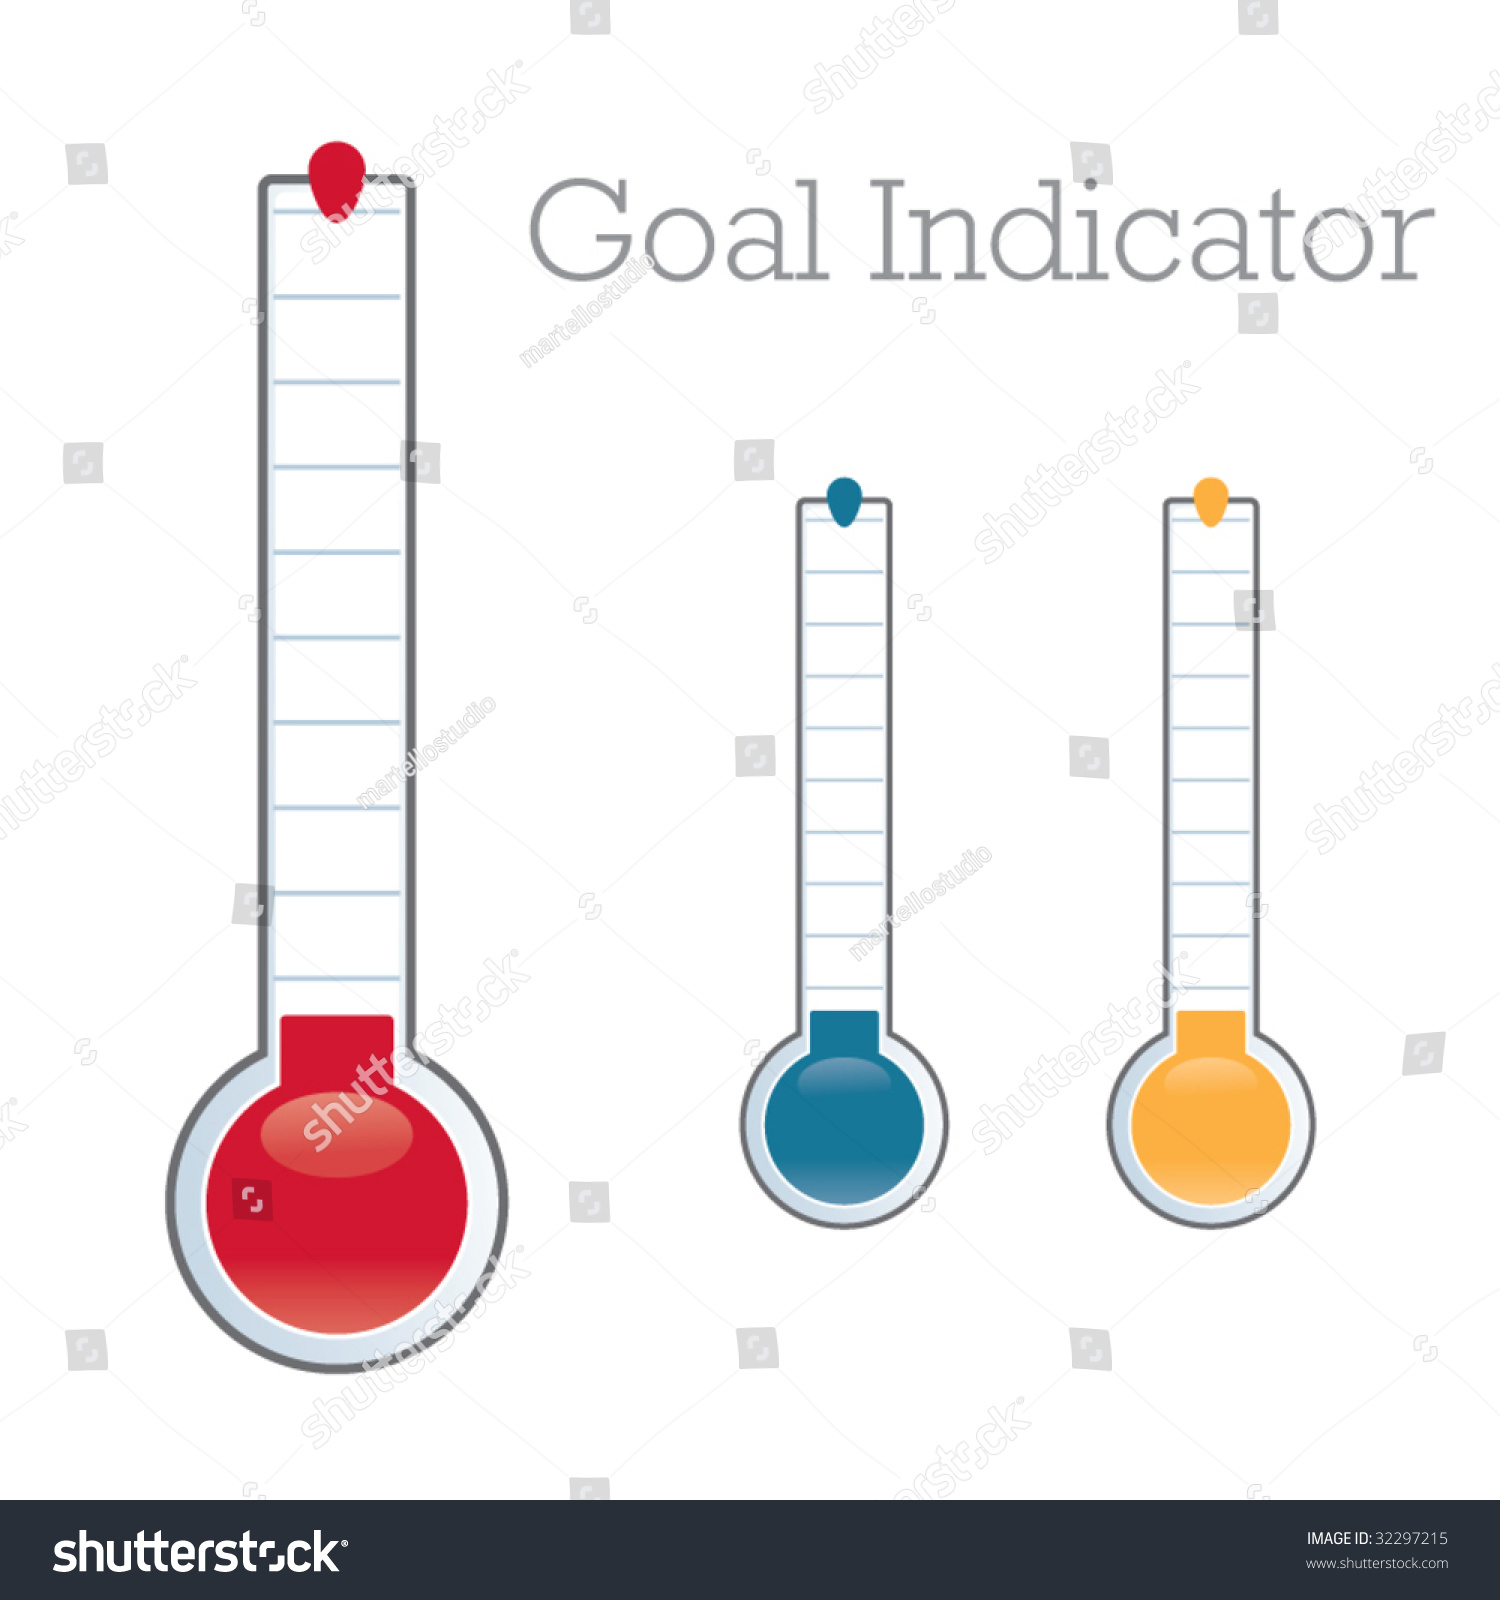 thermometer graphic showing progress towards fundraiser